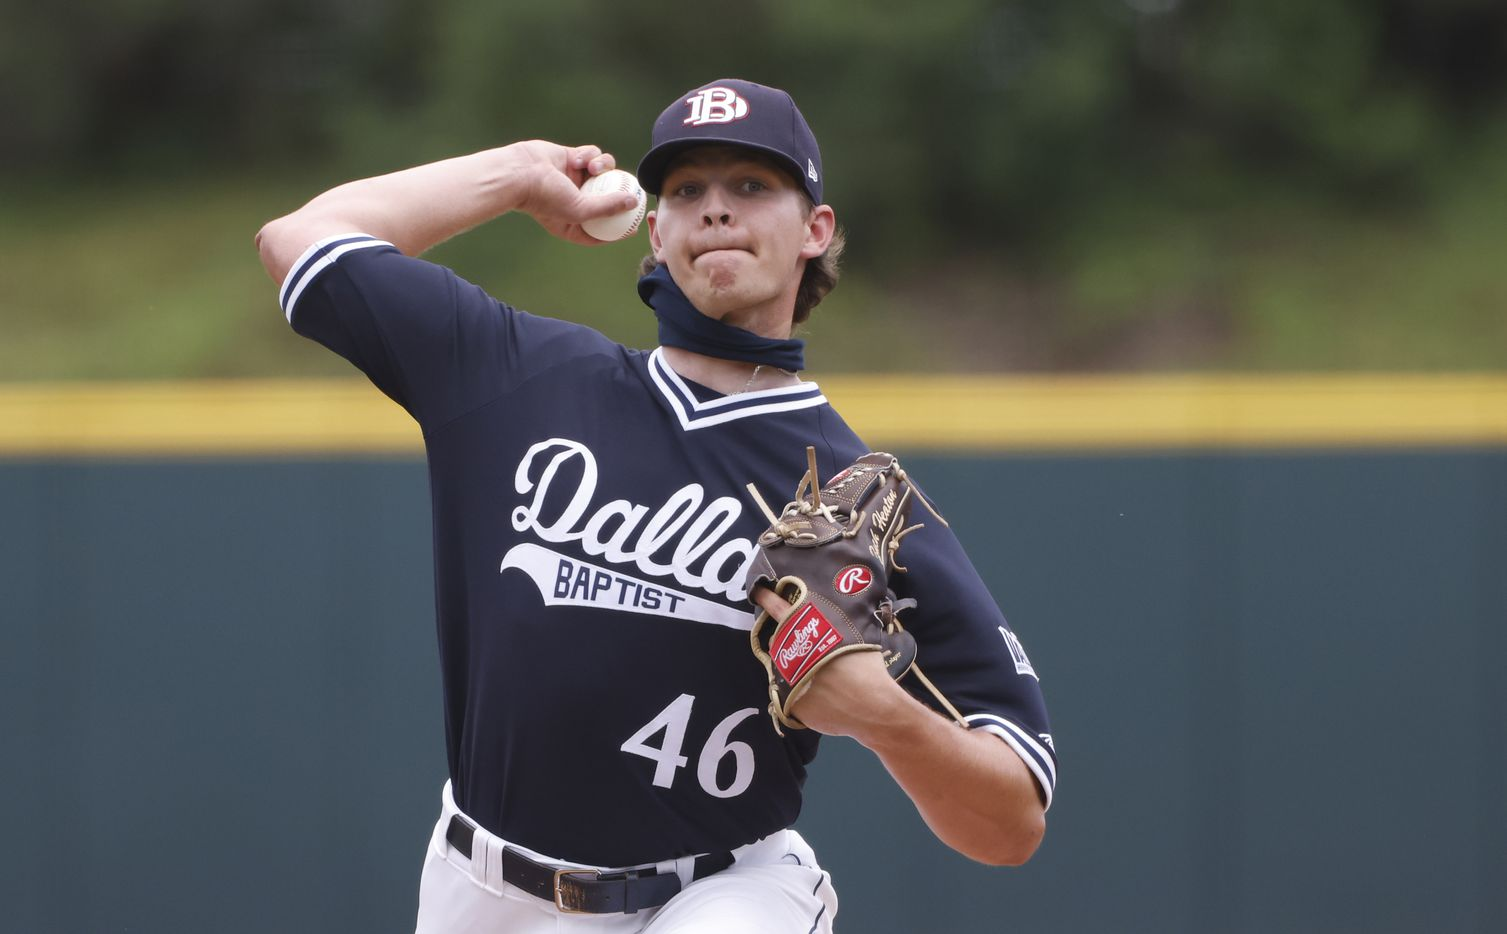 Dallas Baptist pitcher Zach Heaton (46) delivers against   Oregon St.during the NCAA Division I Baseball Regional Championship game in Fort Worth, Texas on June 7, 2021. (Ron Jenkins/Special Contributor)